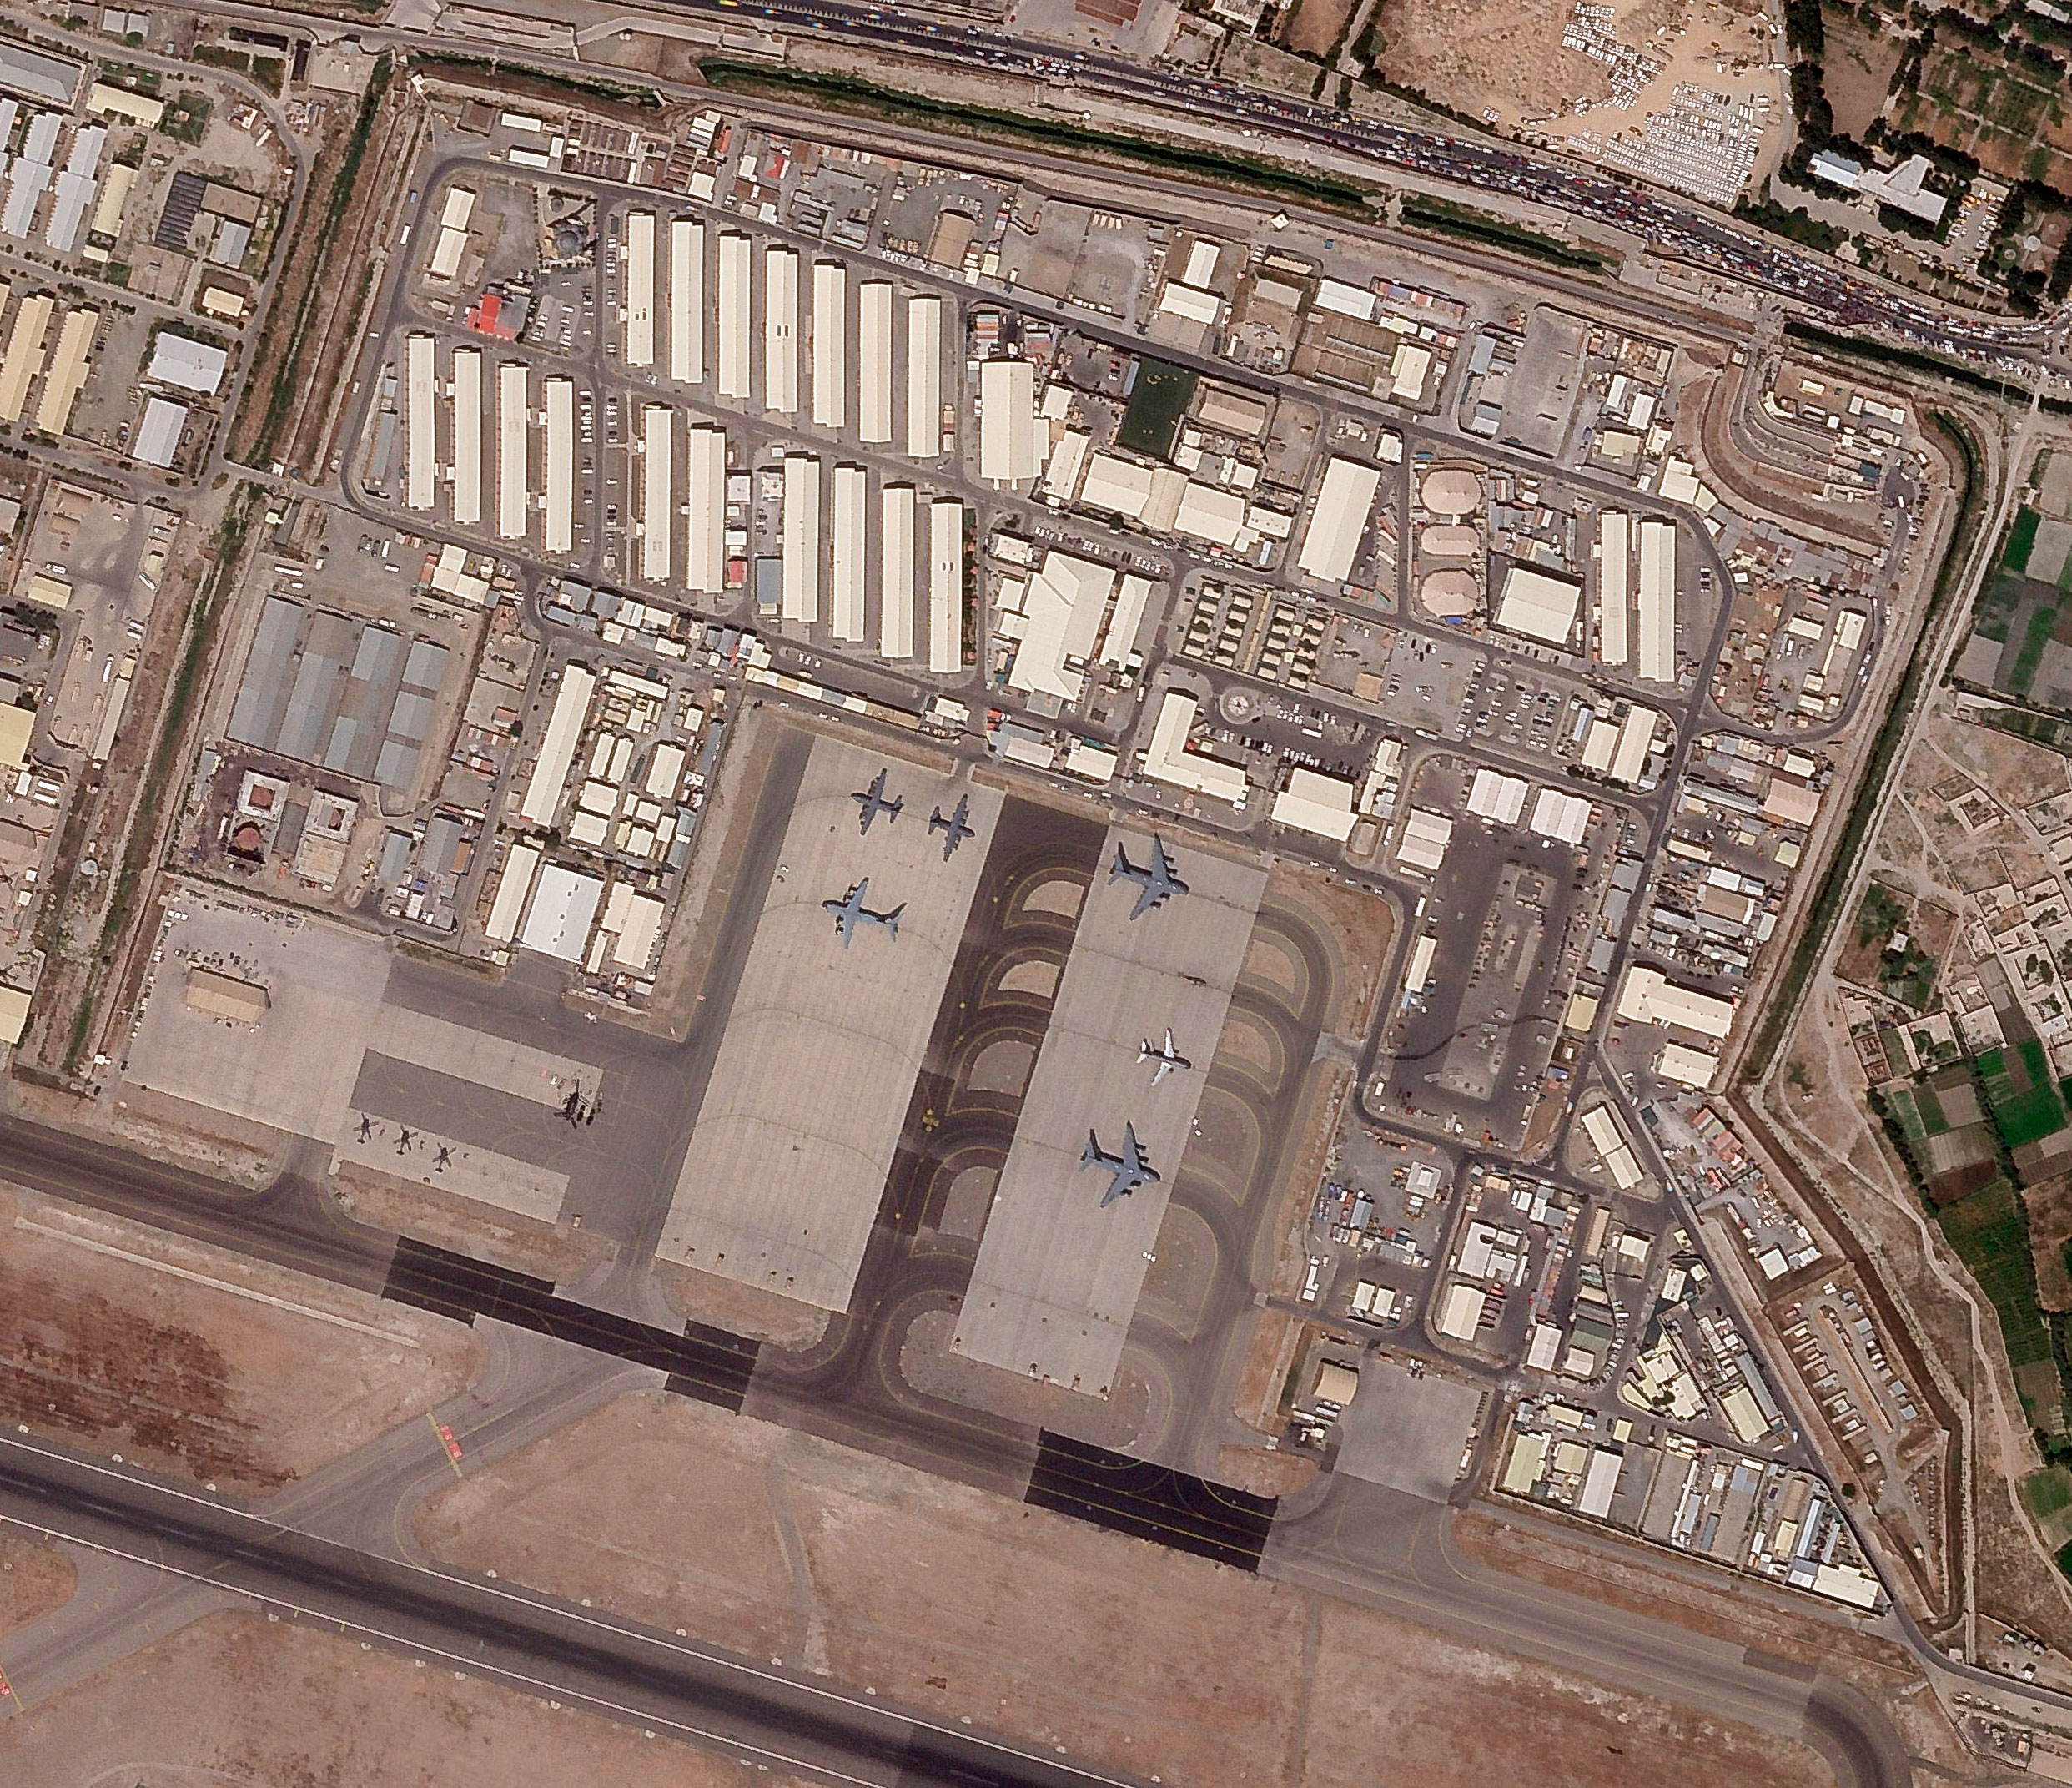 This satellite photo provided by Planet Labs shows the military side of Hamid Karzai International Airport in Kabul, Afghanistan, on August 17, 2021.